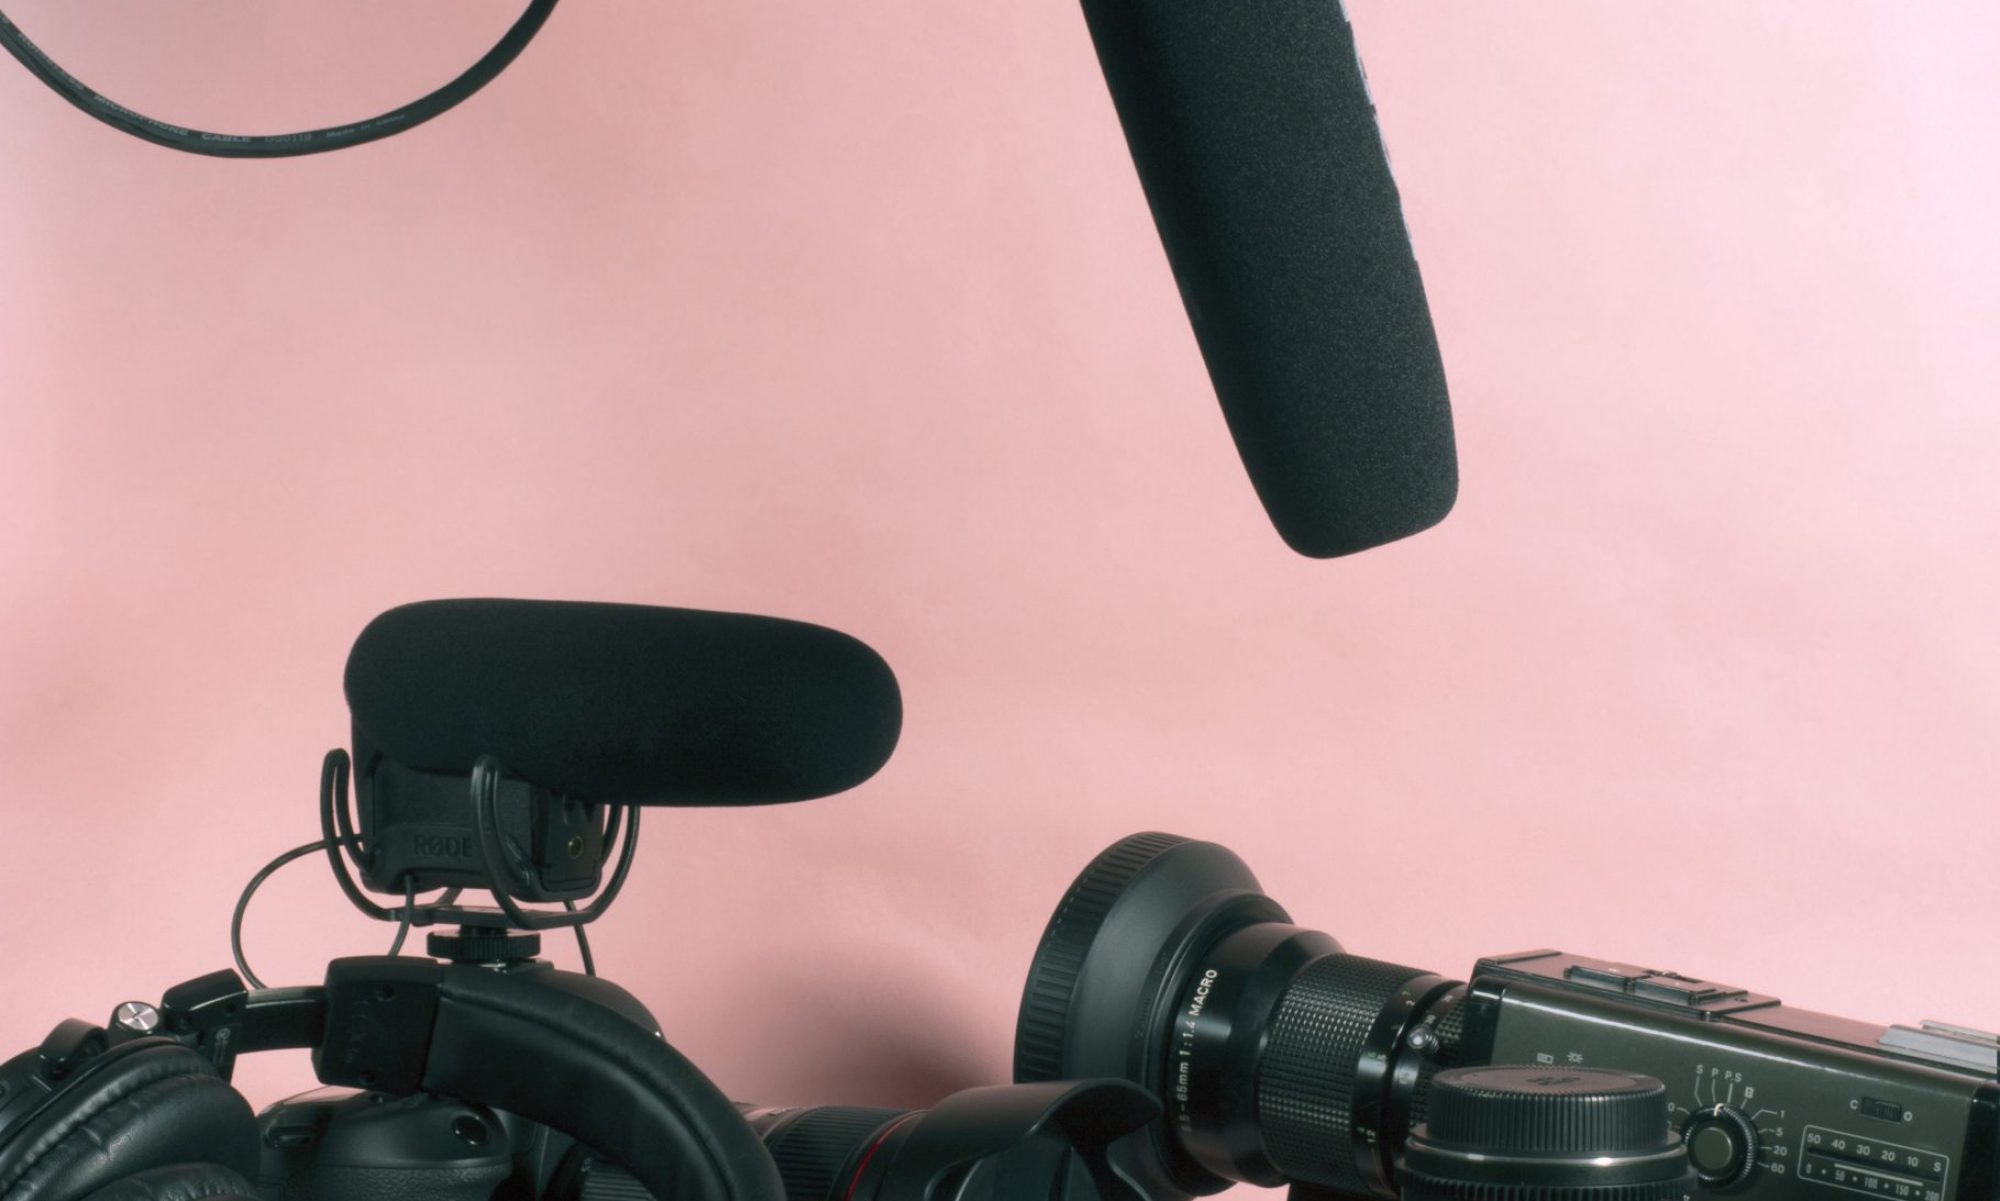 Solid Pink Productions